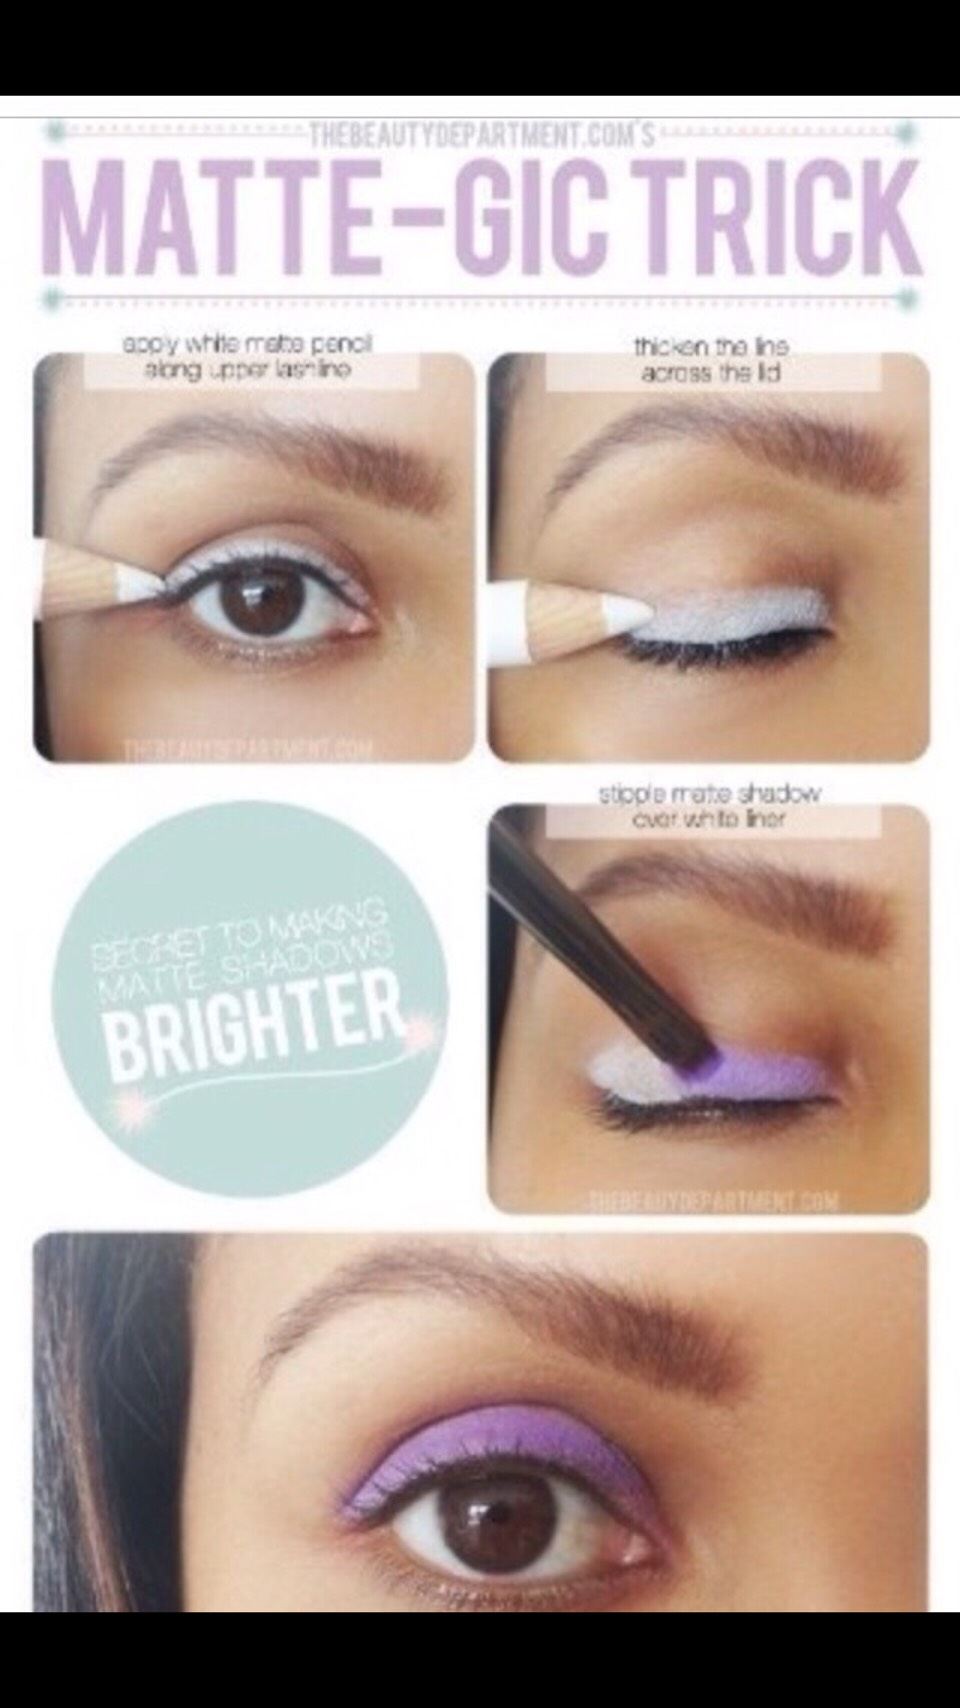 Is your makeup almost transparent? Or do you feel its too light and you want it to show more? Just apply white on the bottom and it will give you that bright look👀👍